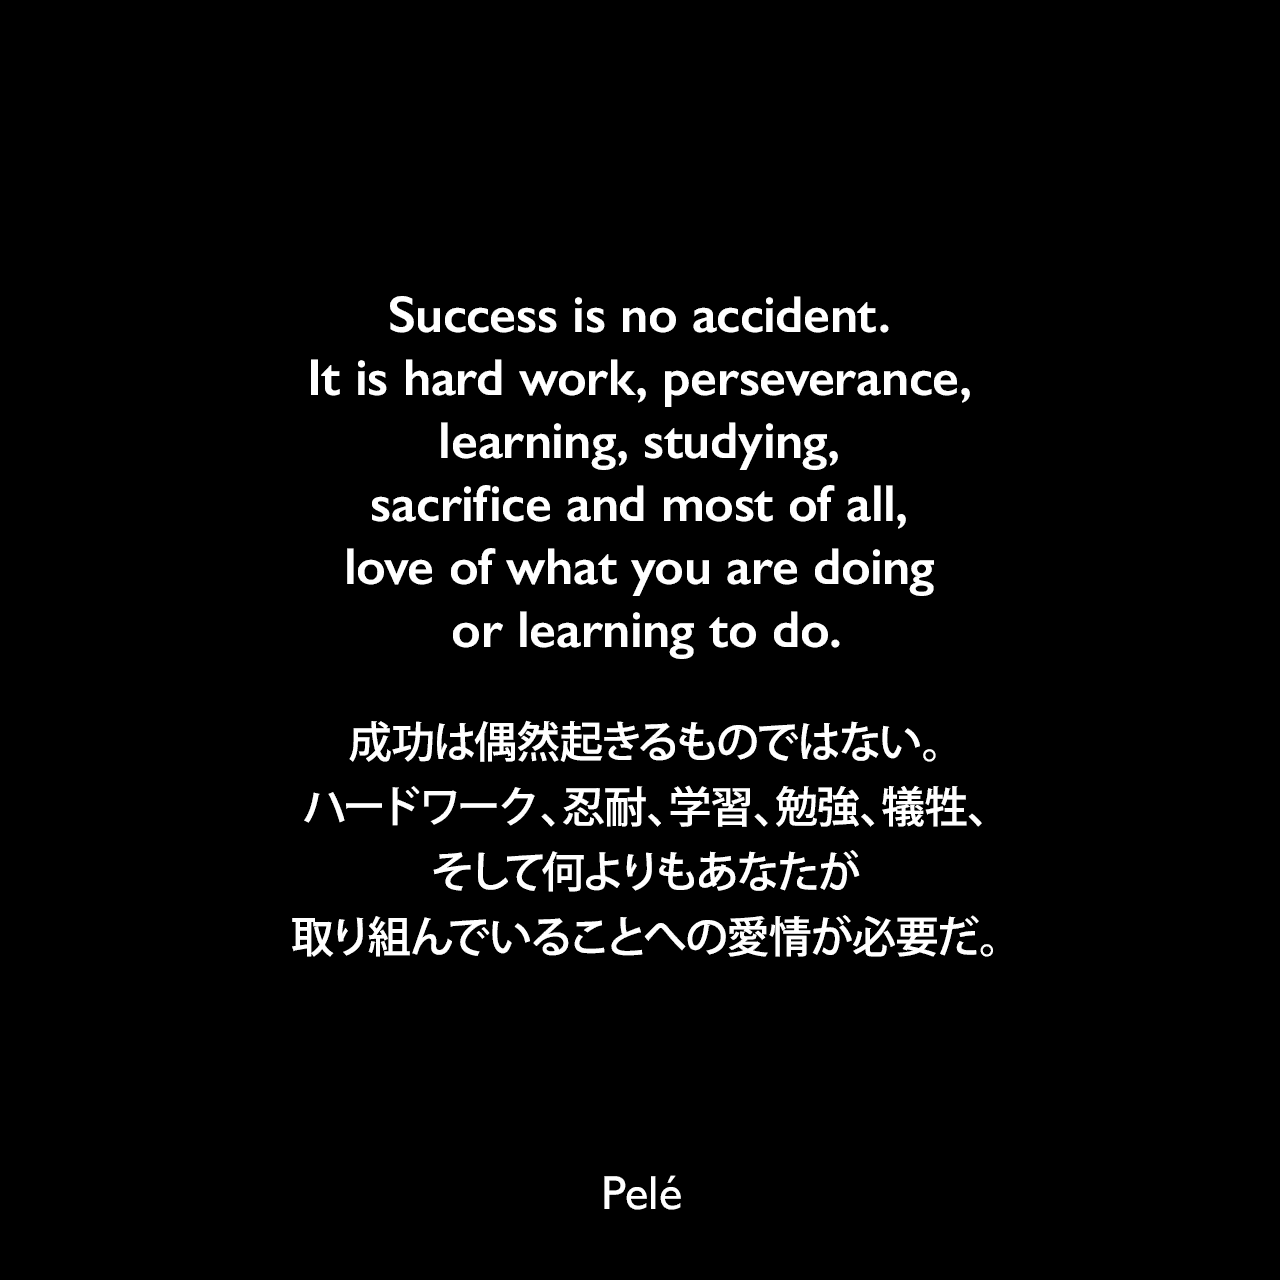 Success is no accident. It is hard work, perseverance, learning, studying, sacrifice and most of all, love of what you are doing or learning to do.成功は偶然起きるものではない。ハードワーク、忍耐、学習、勉強、犠牲、そして何よりもあなたが取り組んでいることへの愛情が必要だ。Pelé